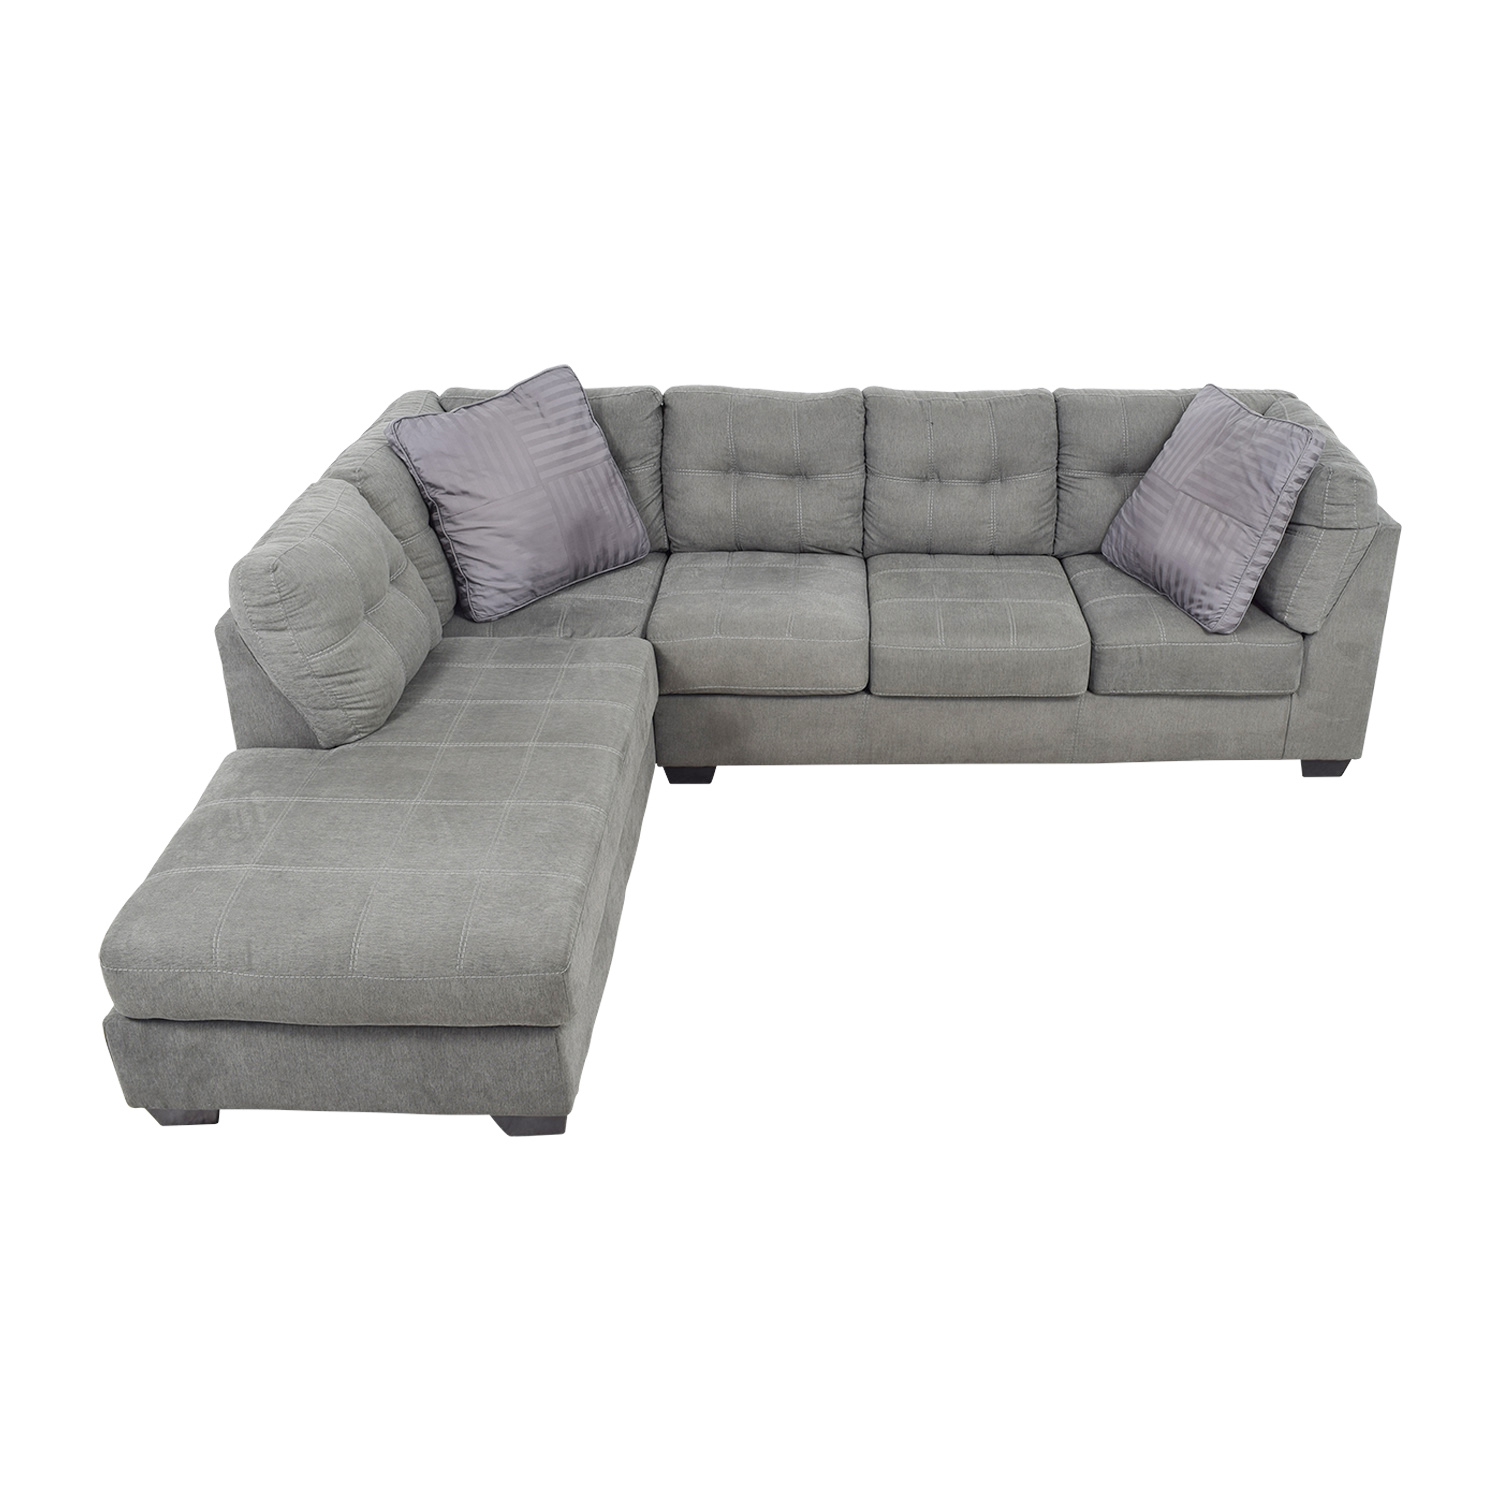 jennifer convertible sofas on sale pier one alton sofa sectionals used for